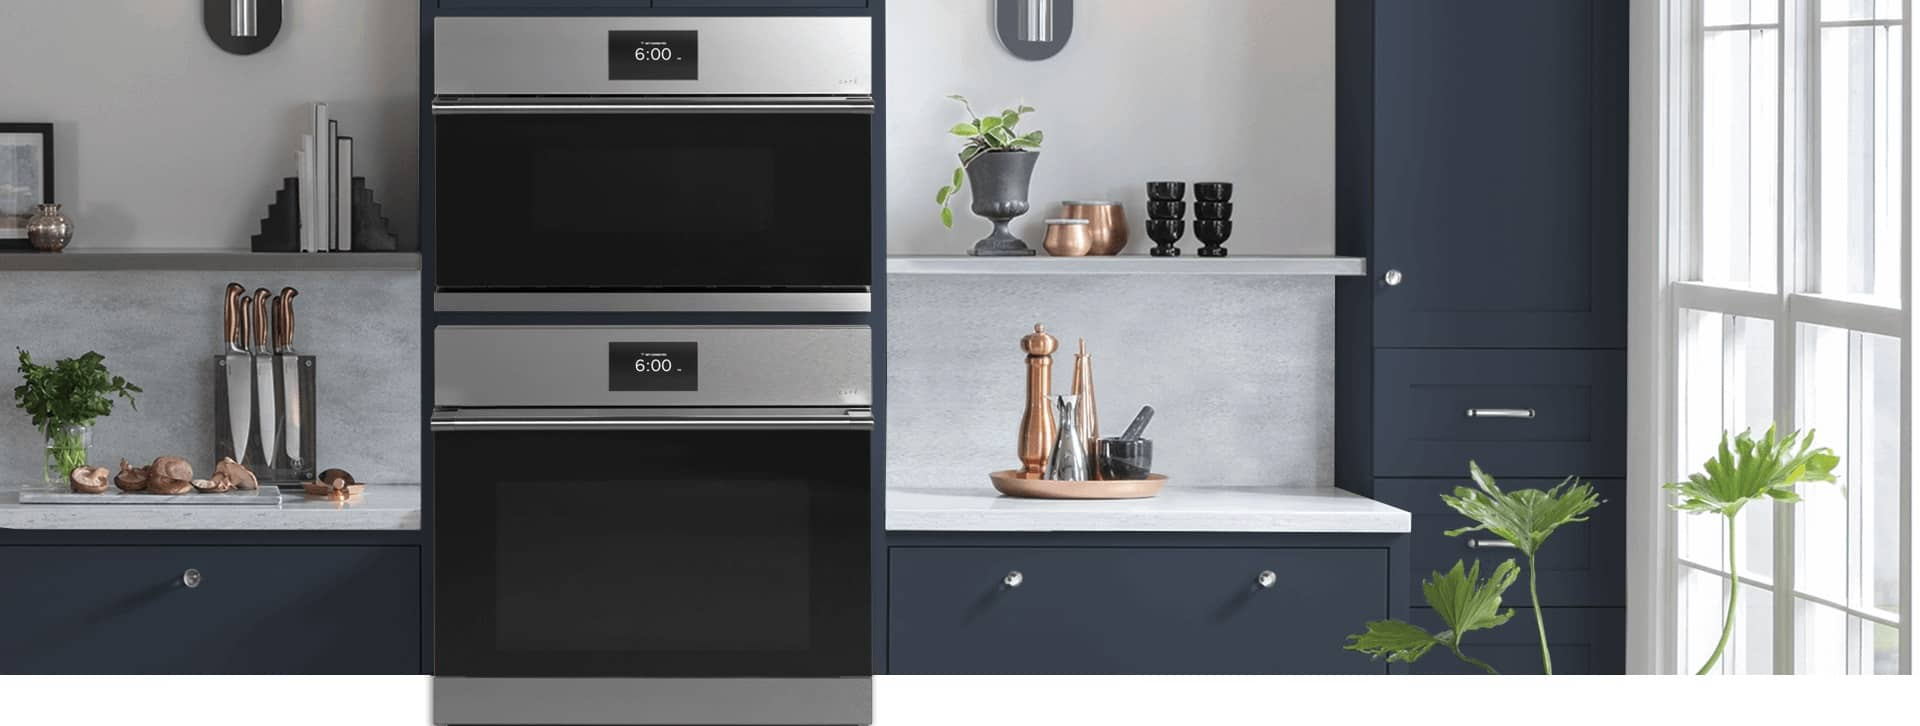 Cafe Appliances wall-oven